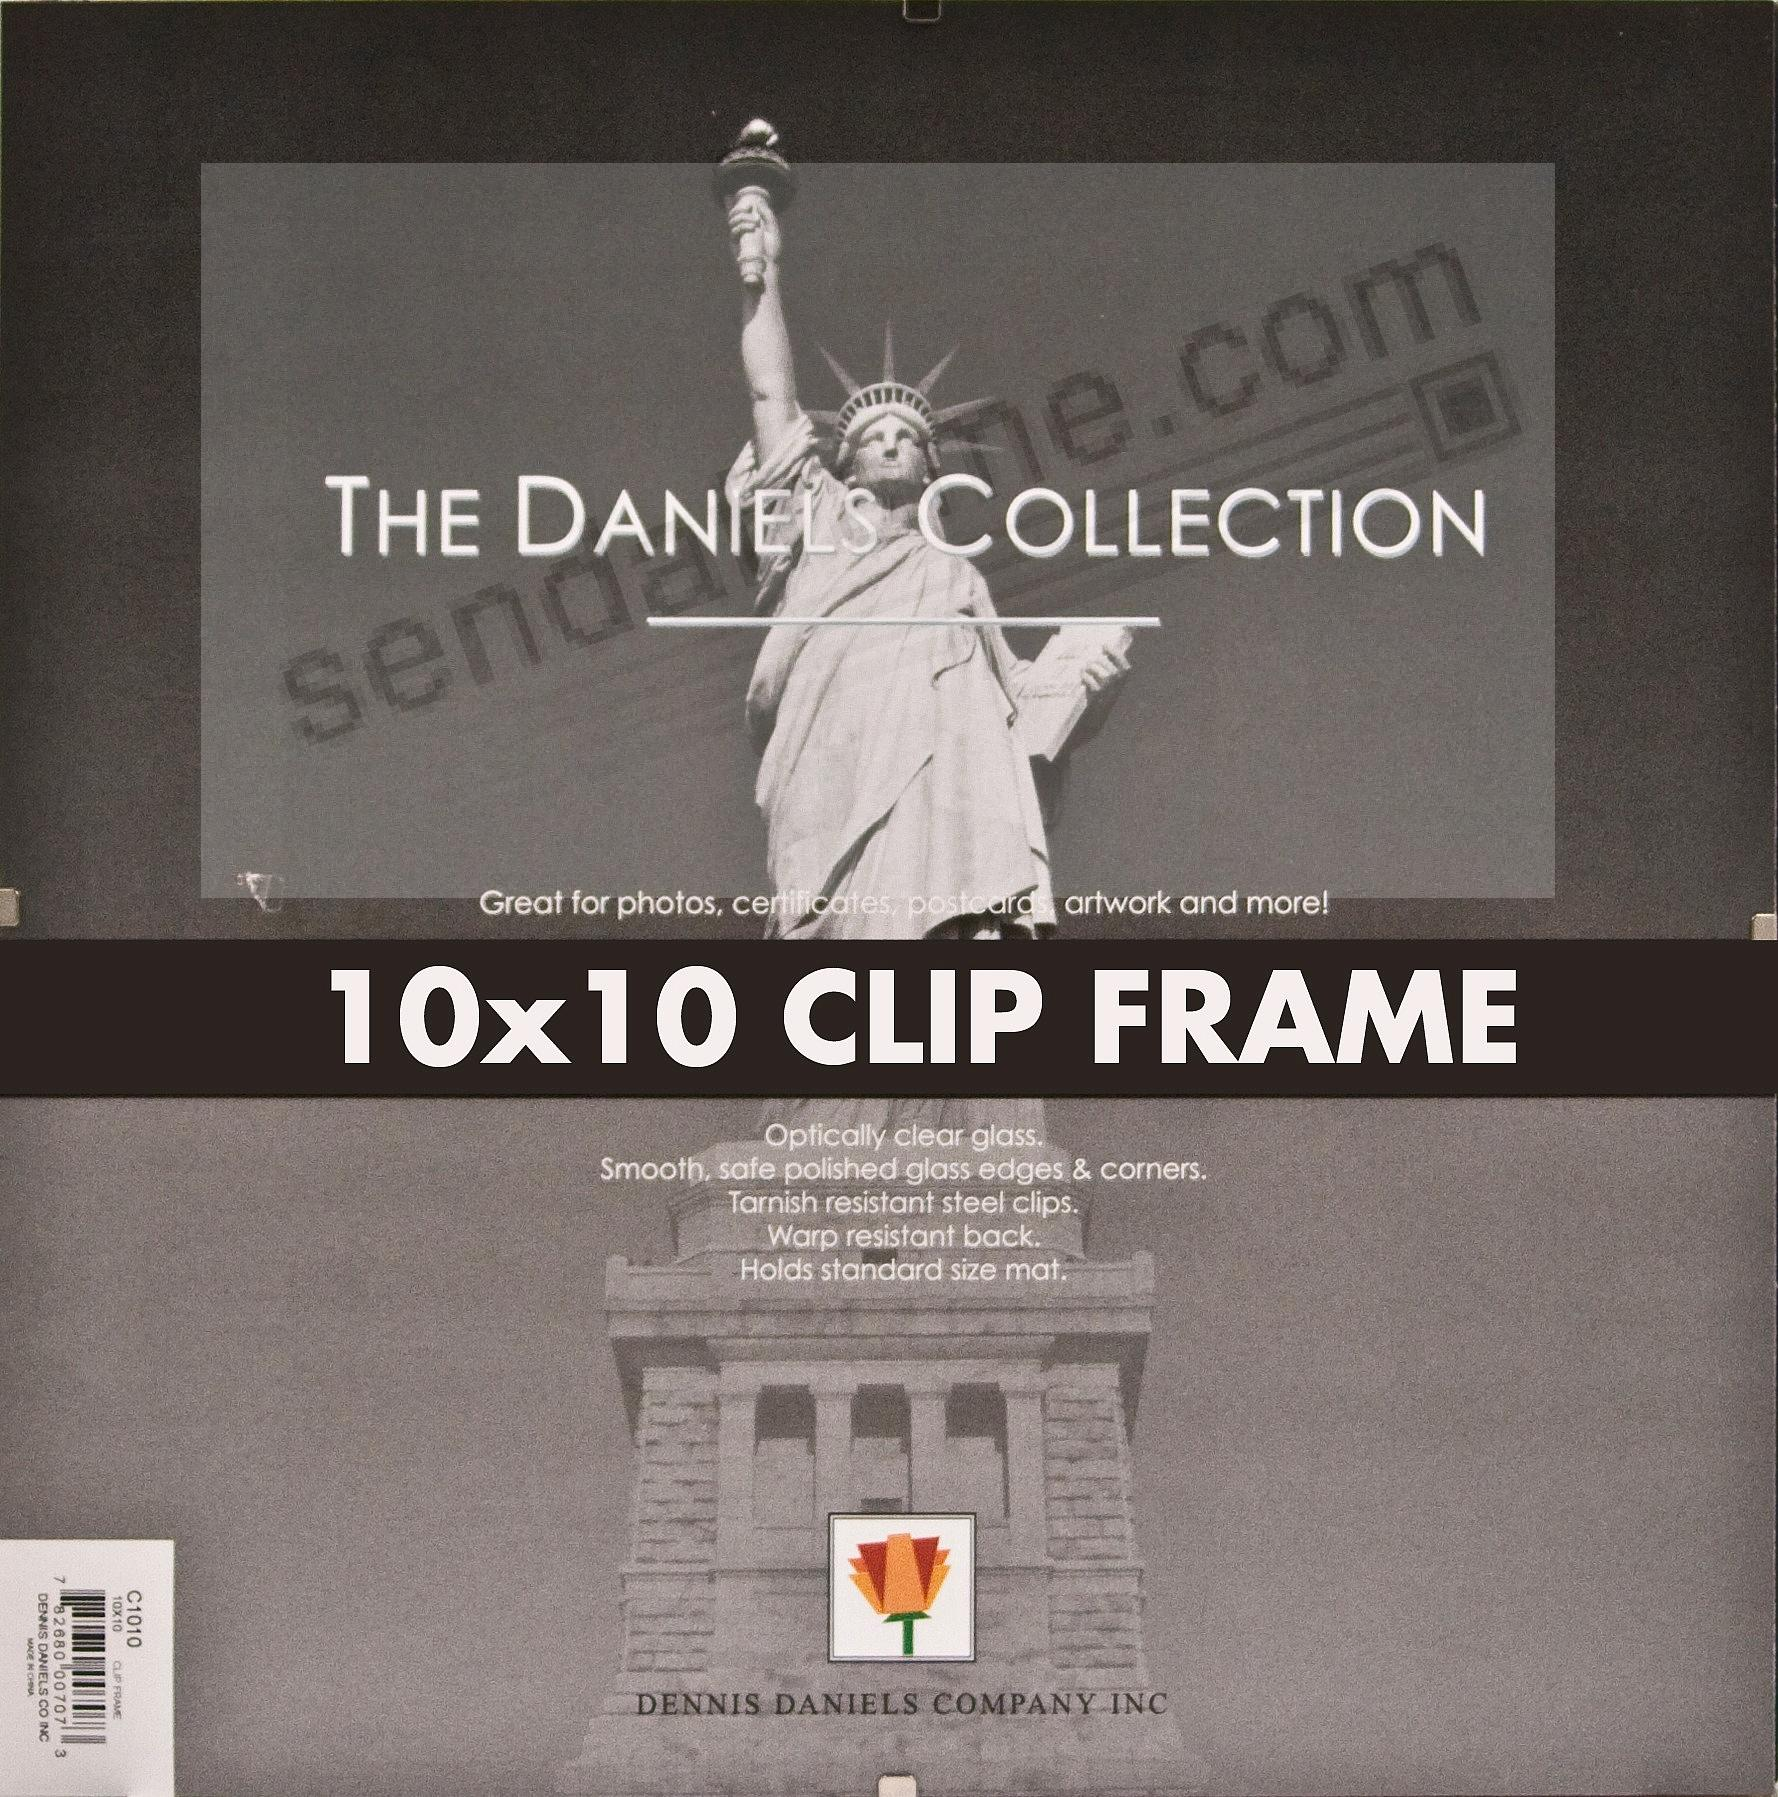 The FRAMELESS GLASS CLIP 10x10 frame by Dennis Daniels® - Picture ...